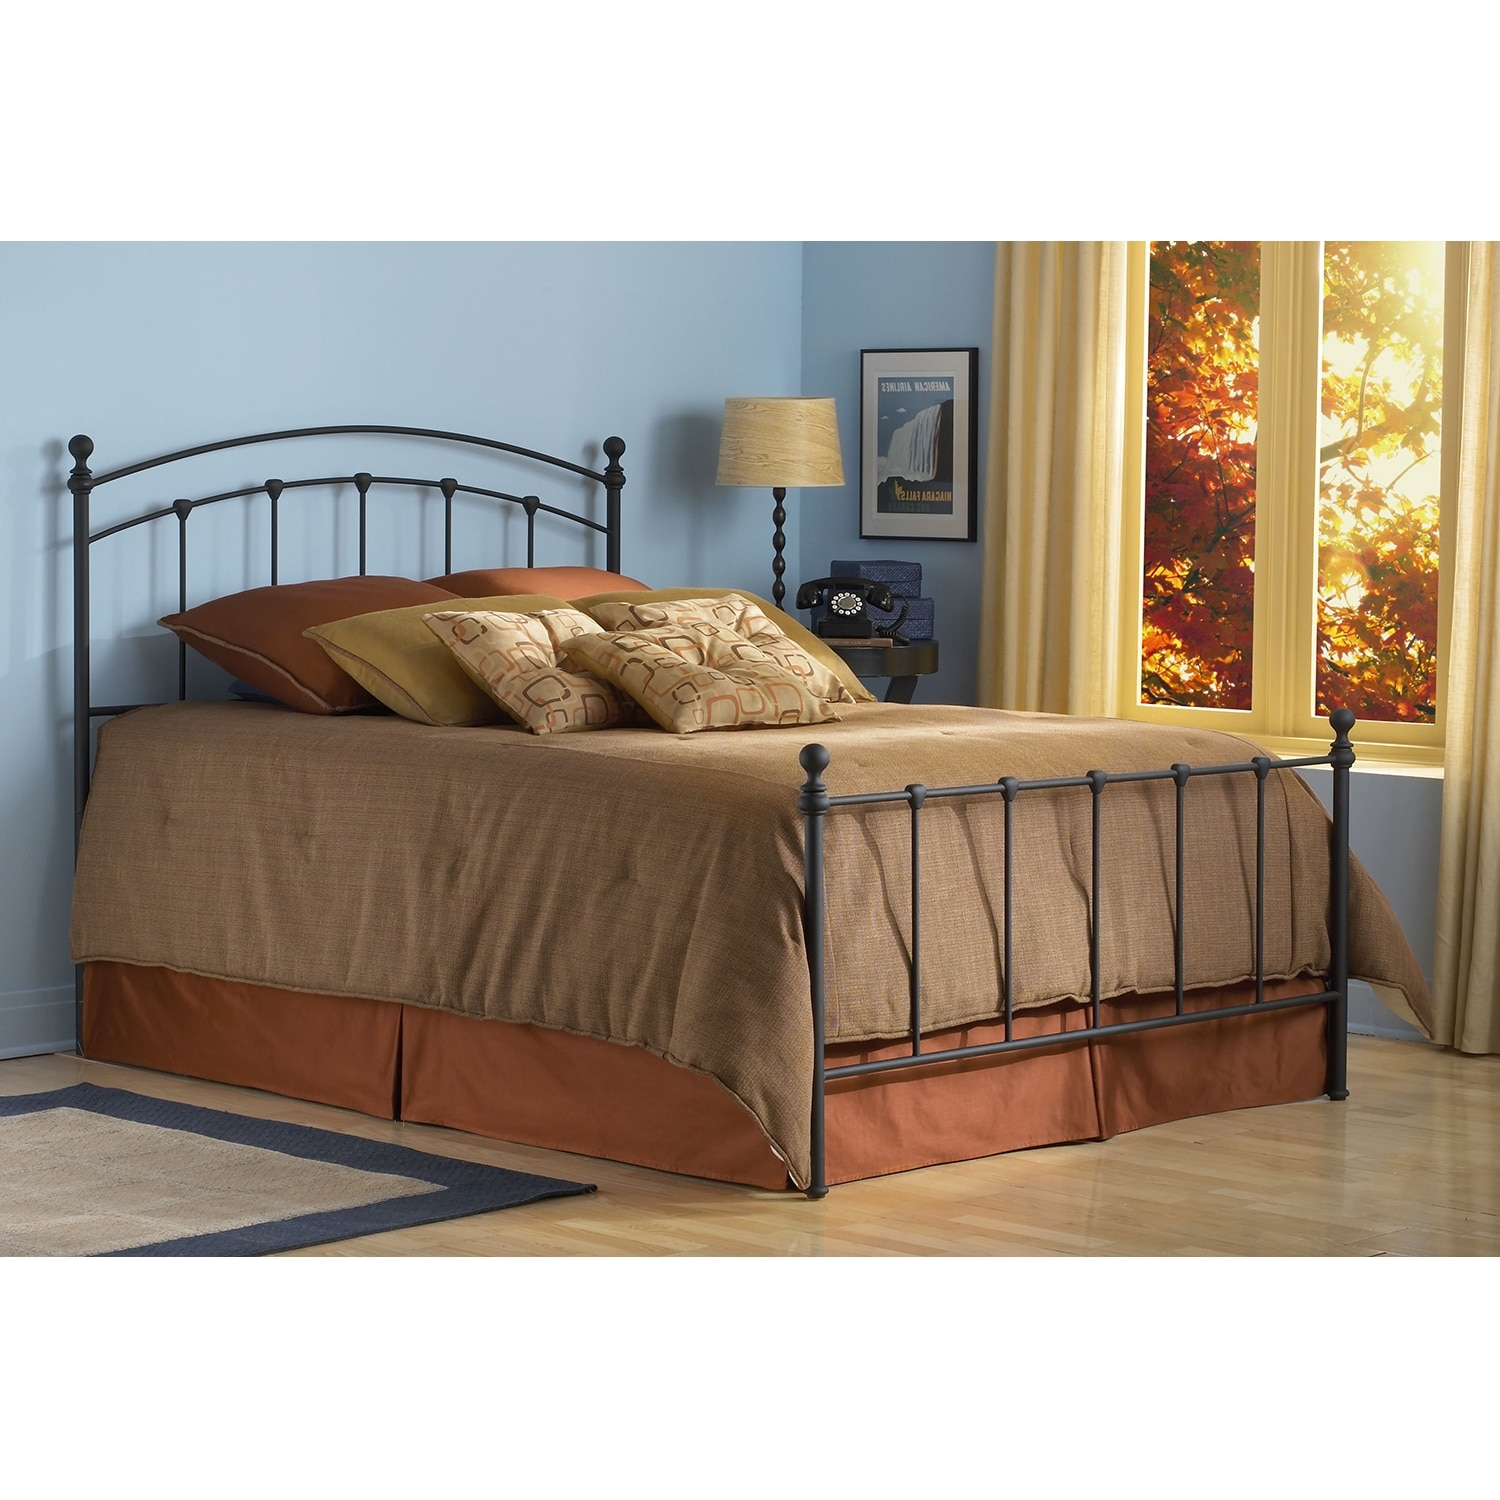 Bedroom Furniture - Sanford Queen Bed